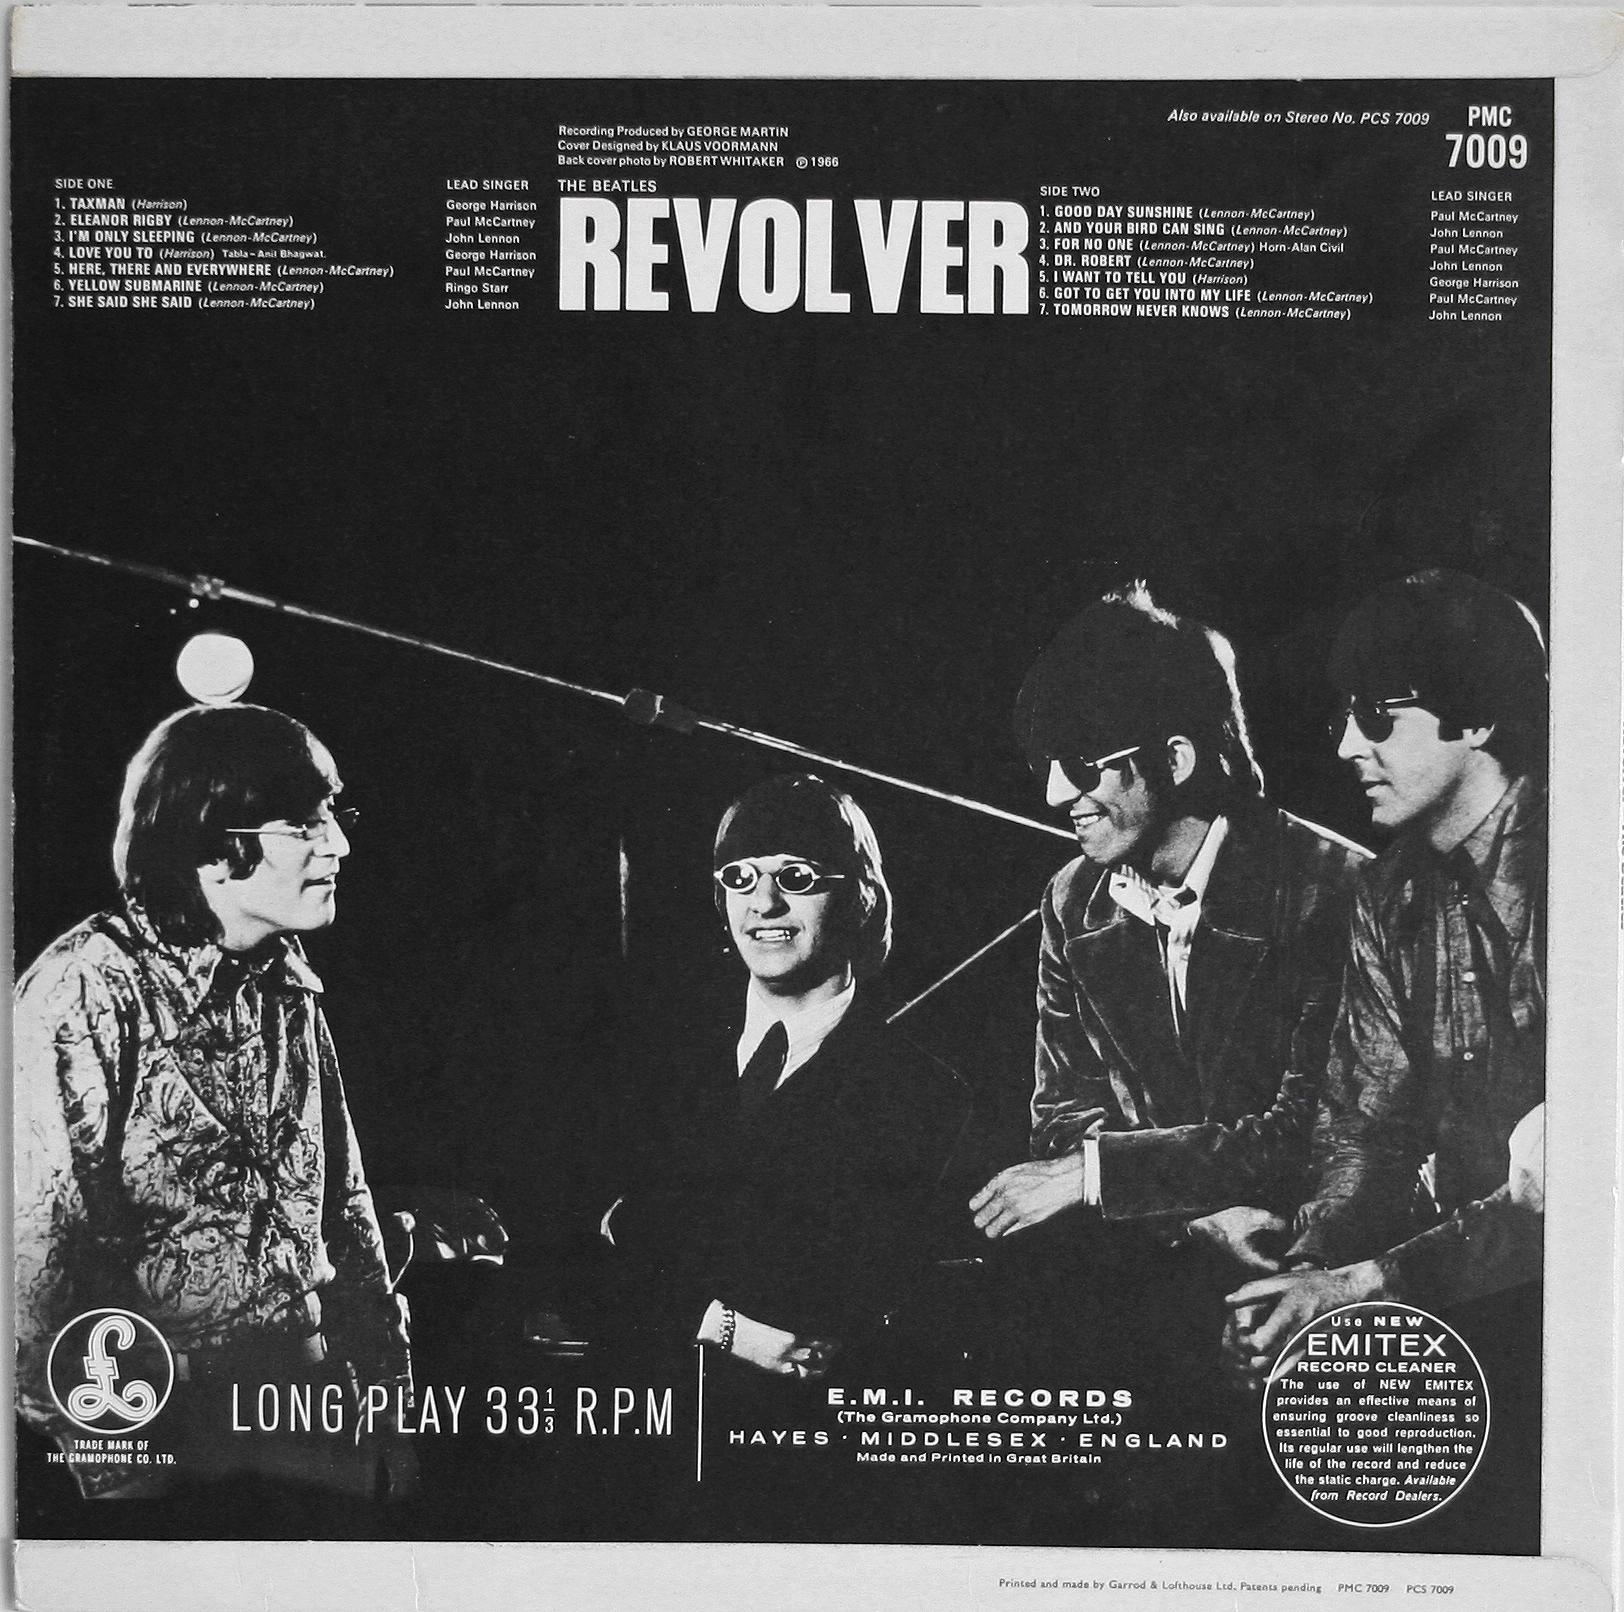 The Beatles - Revolver back cover